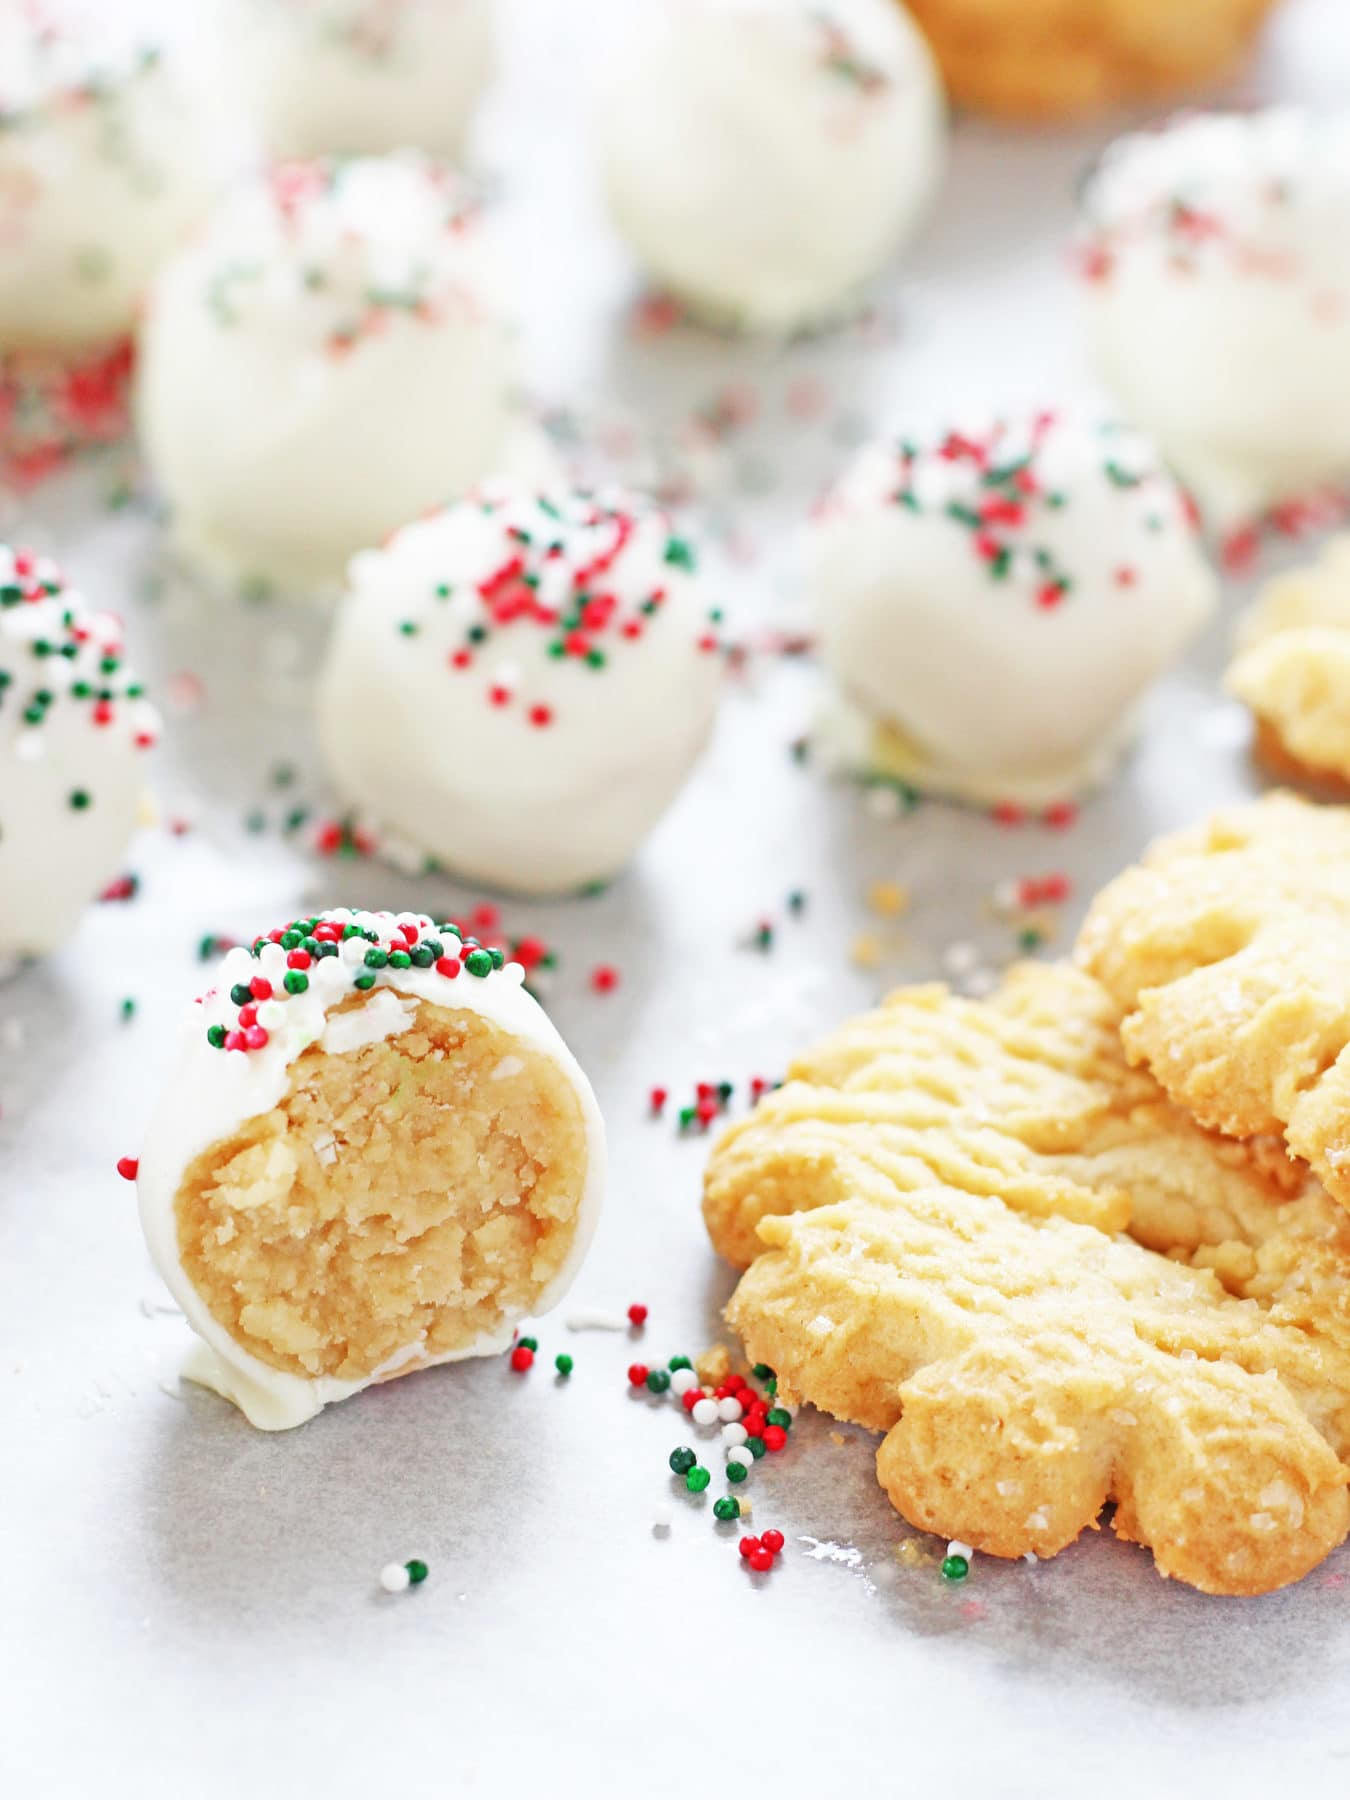 Easy Christmas Baking Recipies  Christmas Cookies Easy Christmas Recipes The 36th AVENUE